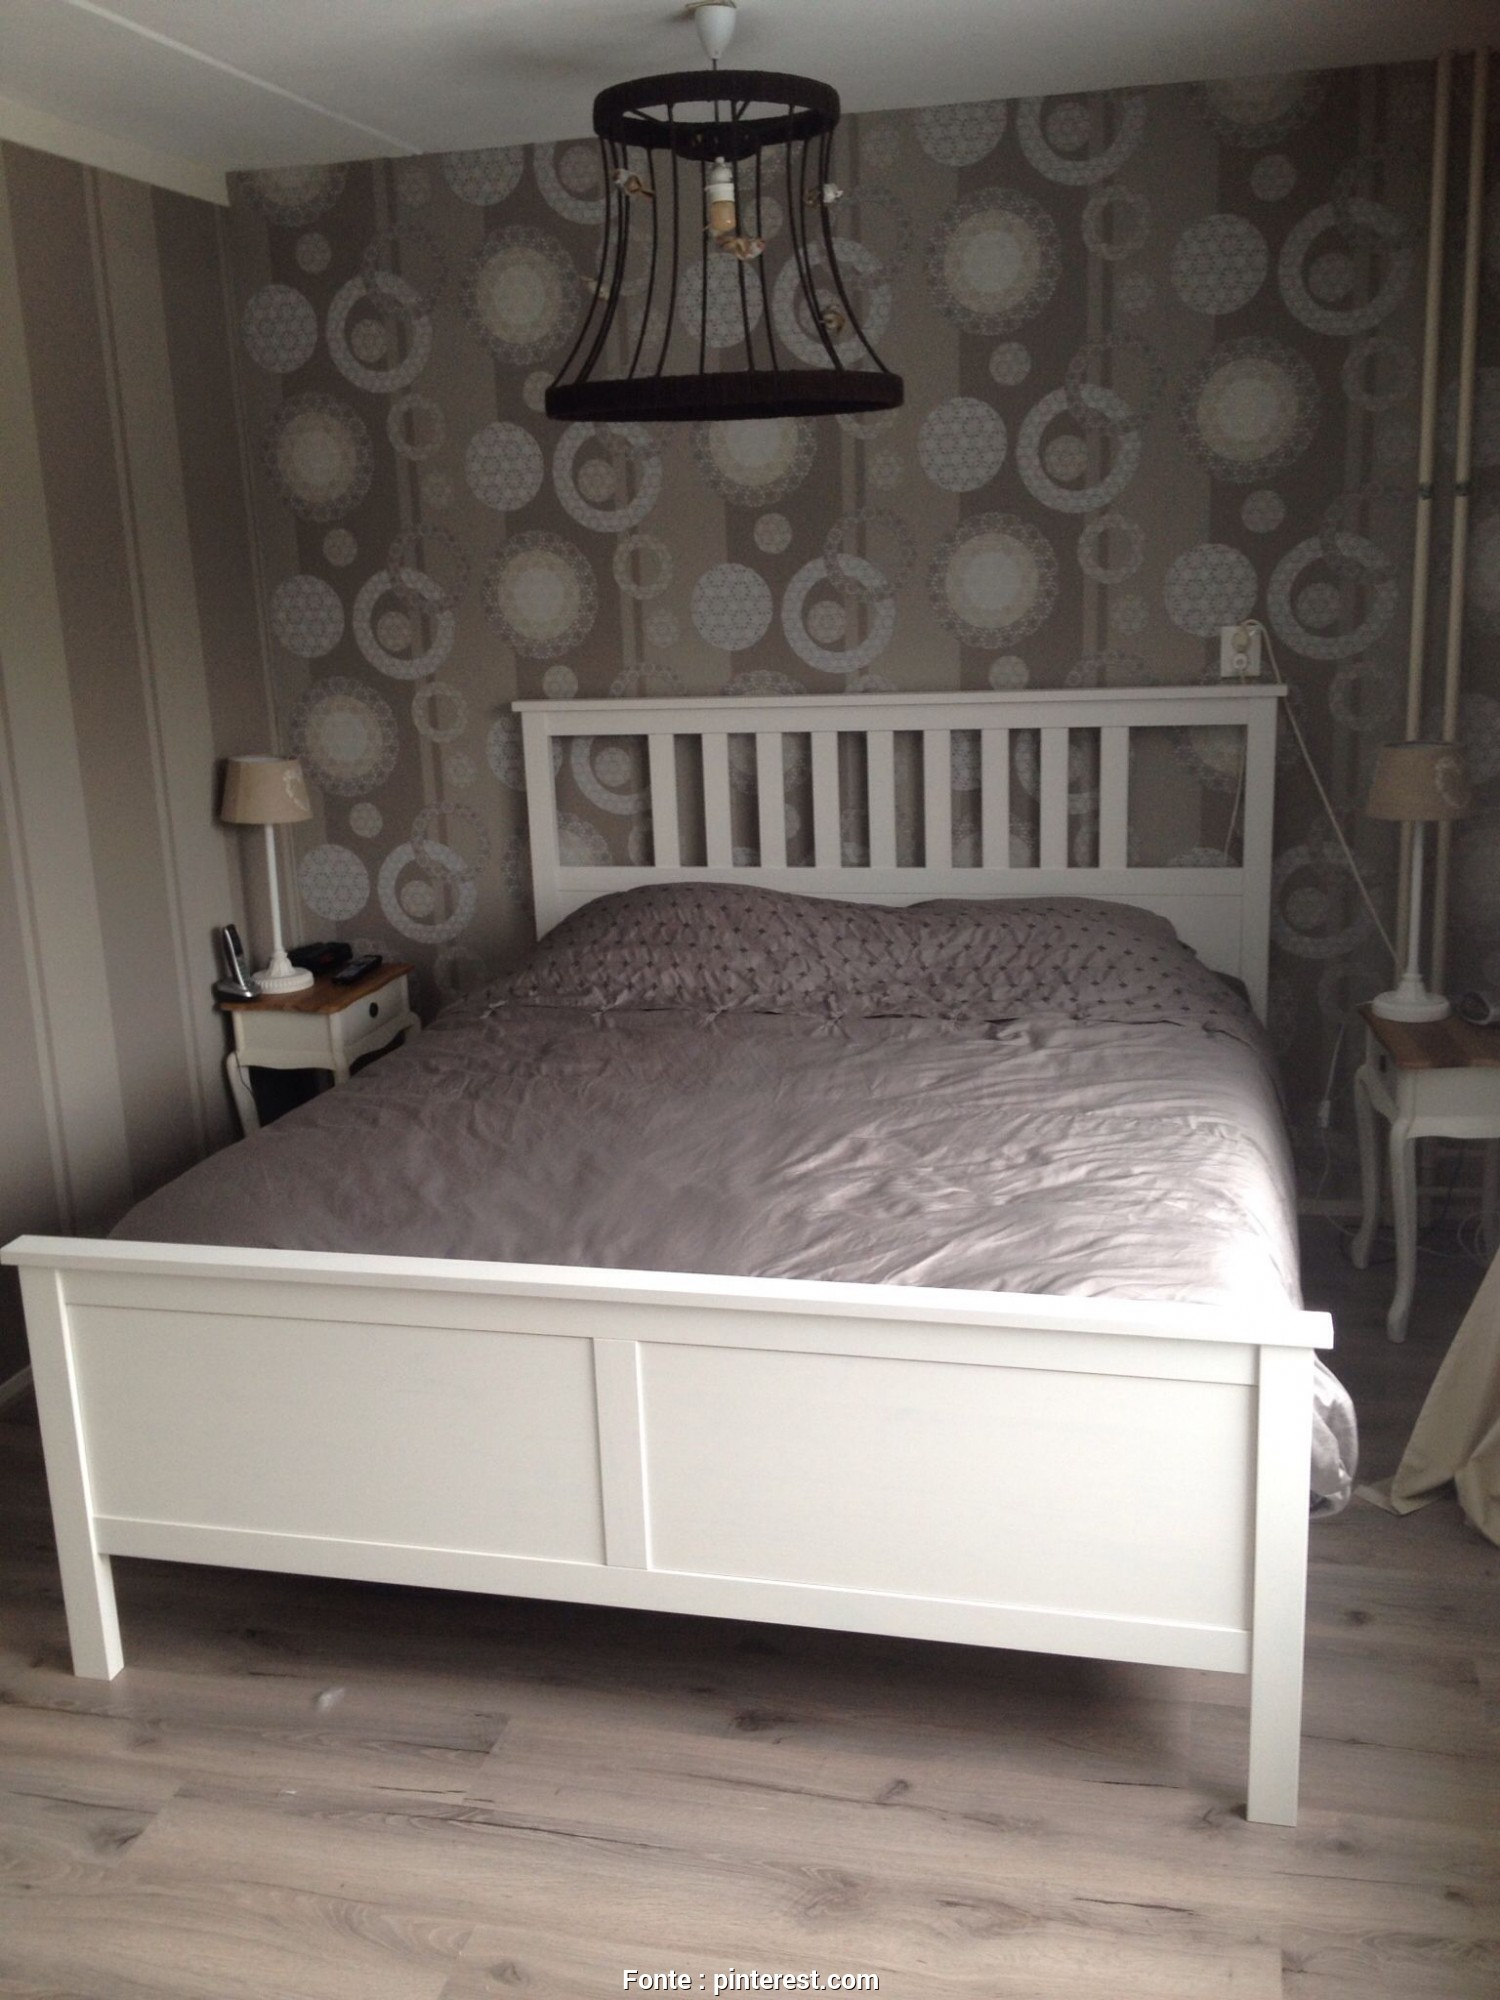 Video Letto Hemnes Ikea, Bellissima Ikea Hemnes, (160 X, Cm), Ideal Bedroom, Hemnes Bed, Bed